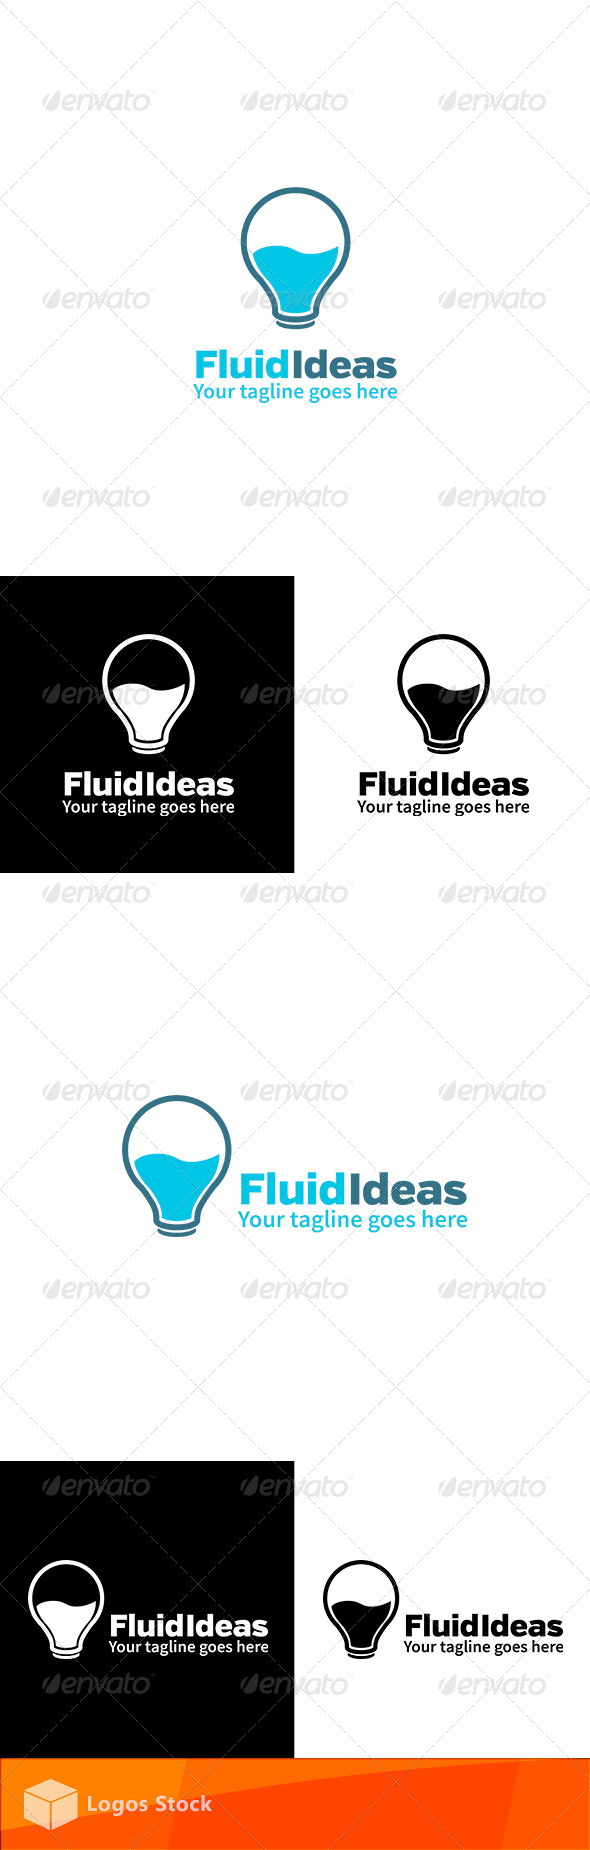 Creative Logo - Fluid Ideas - Vector Abstract